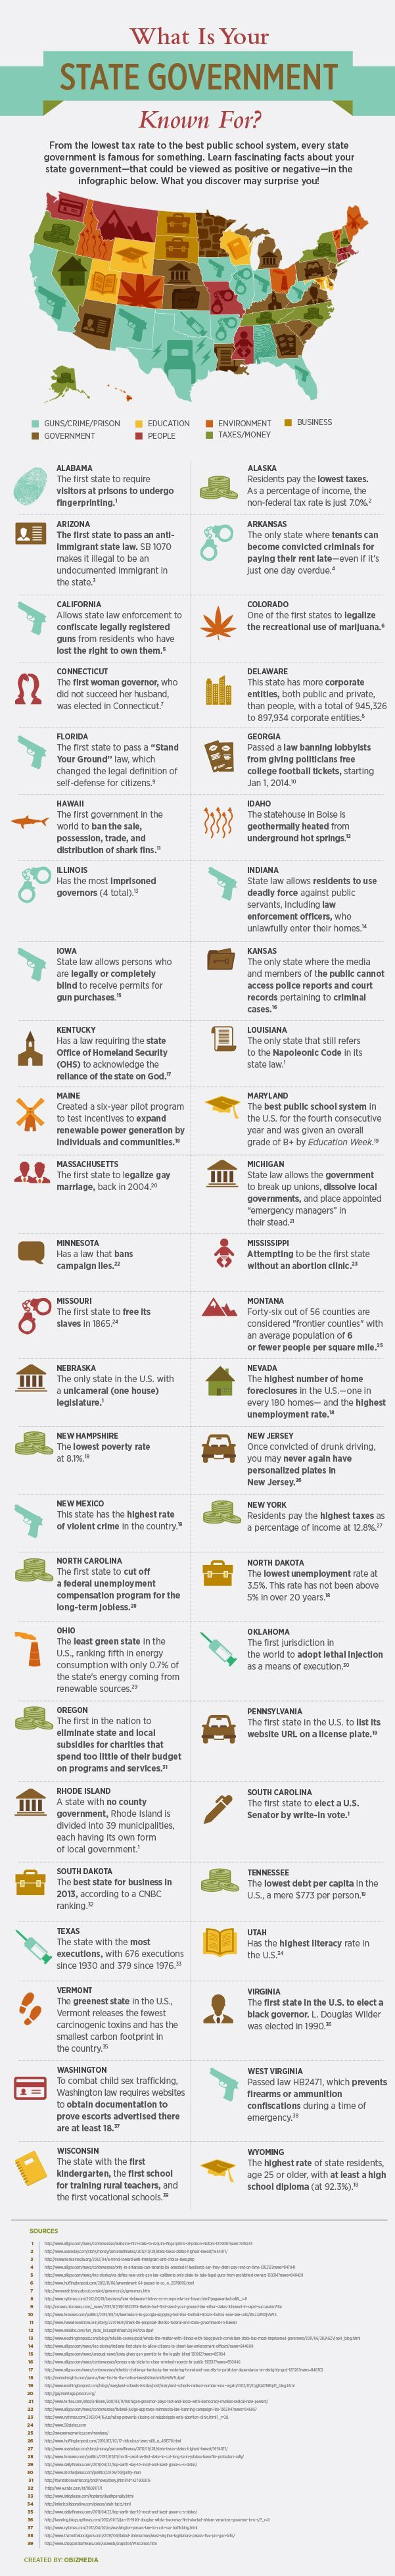 What Is Your State Government Known For   #Infographic #StateGovernment. Interesting but would be better with consistency of icons